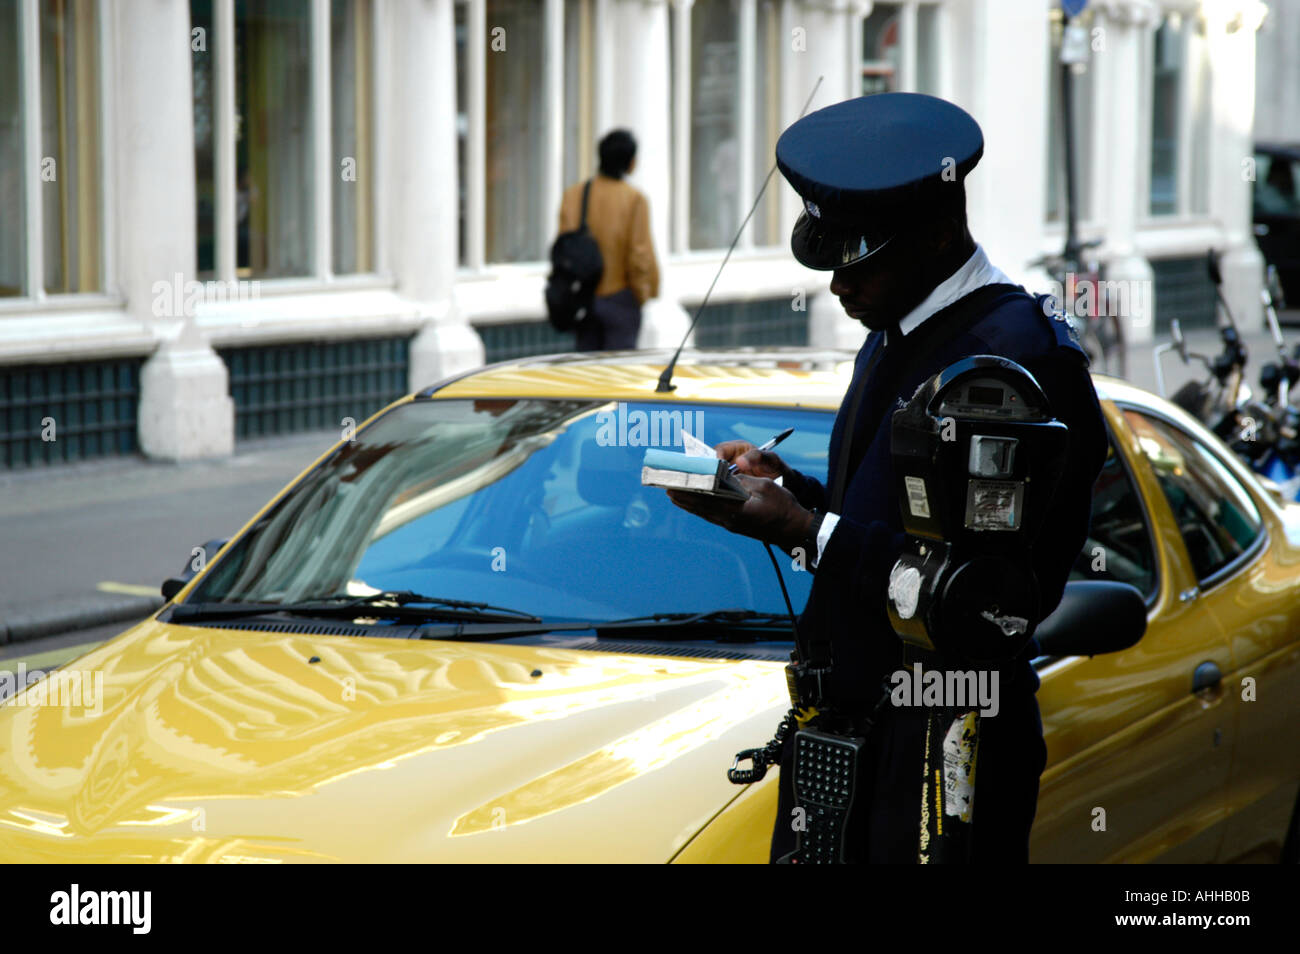 Parking attendant issuing a fine in Westminster London England UK - Stock Image